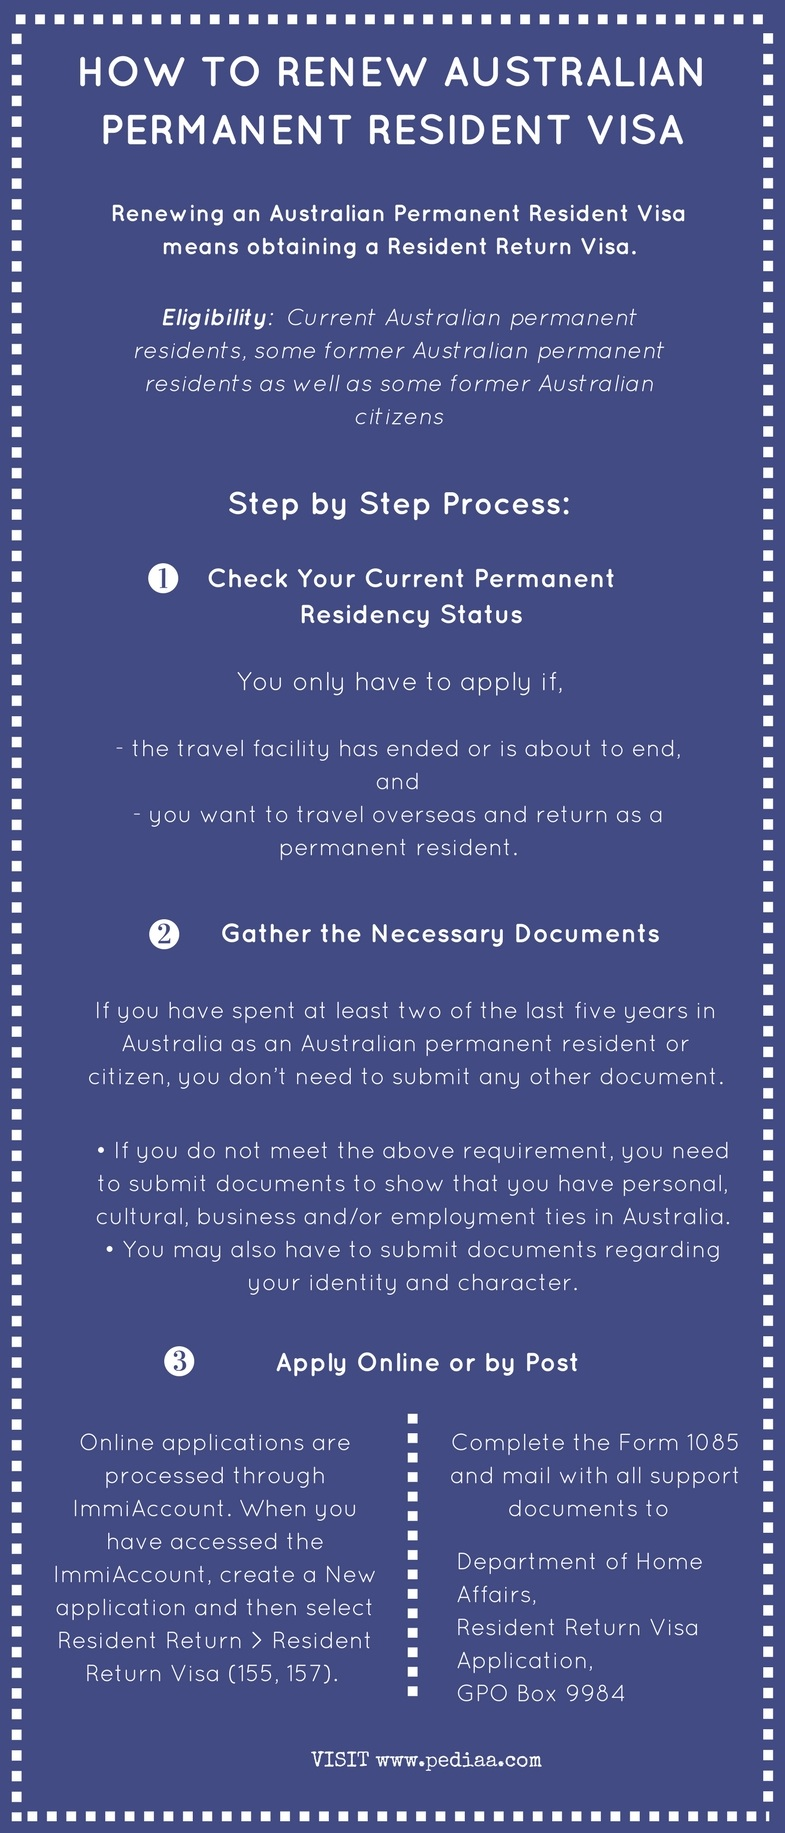 How to Renew Australian Permanent Resident Visa_Infographic